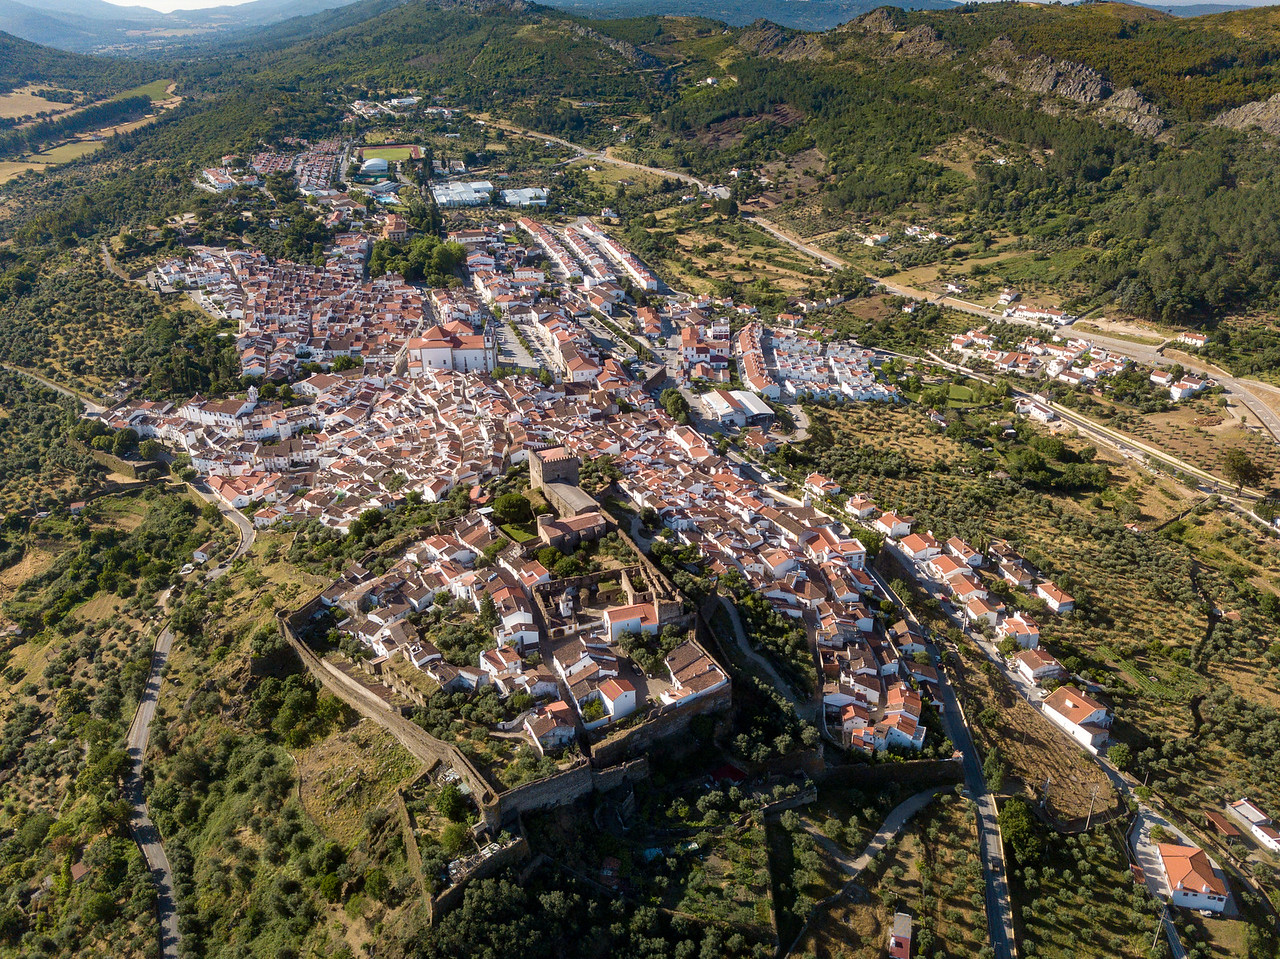 Castelo de Vide and Marvao, Portugal